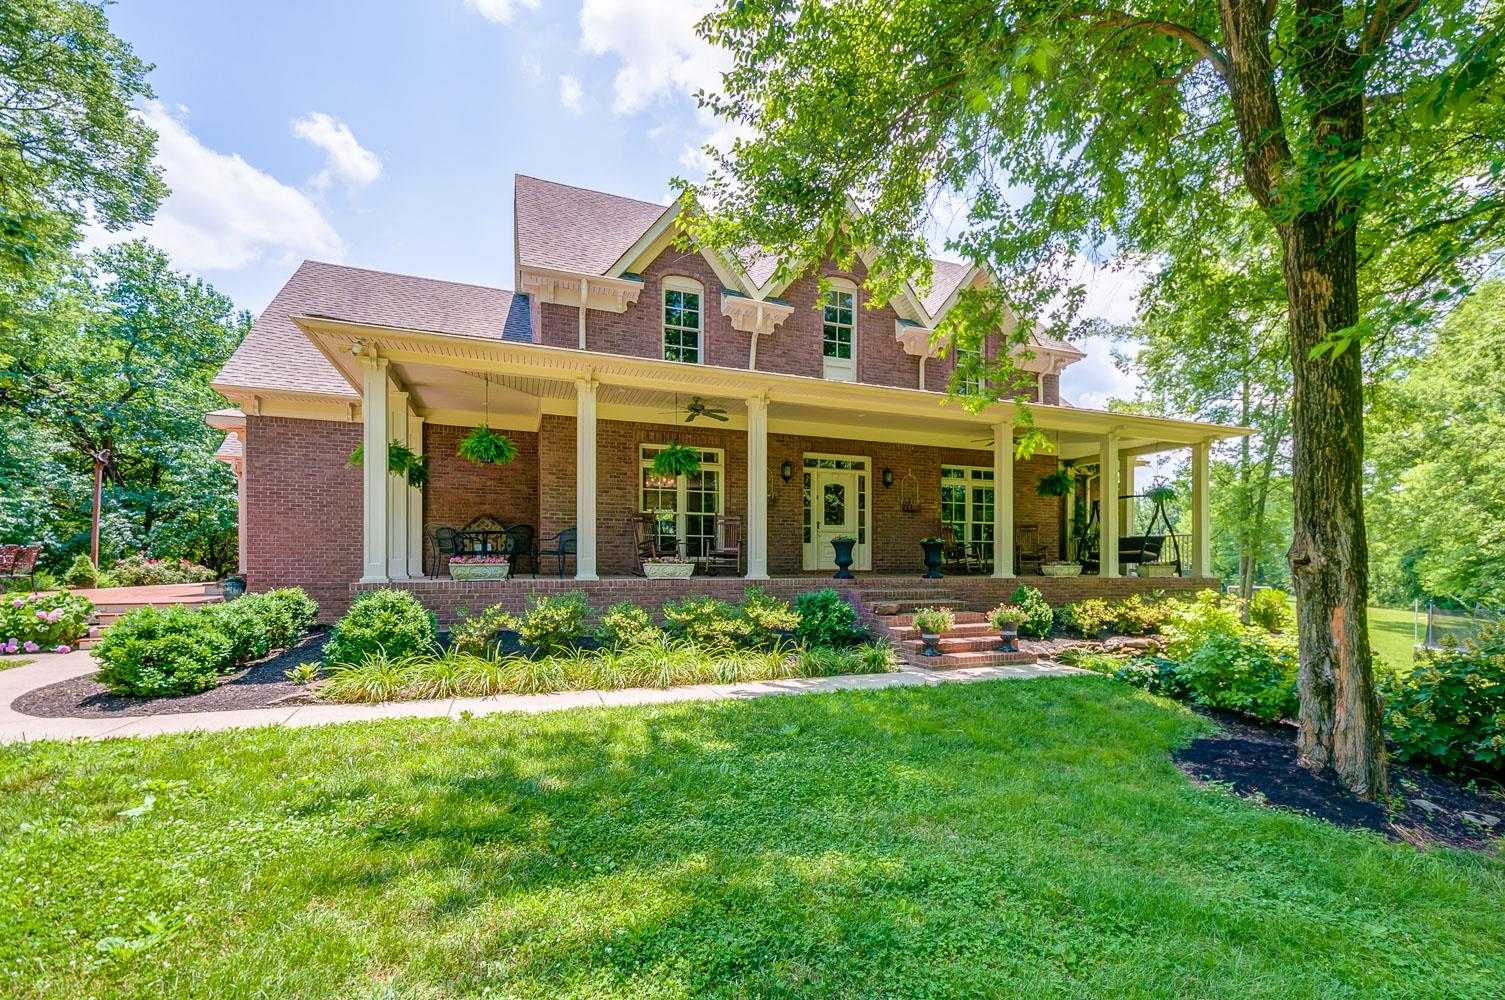 $1,199,000 - 5Br/5Ba -  for Sale in Woods Of Blackberry, Thompsons Station